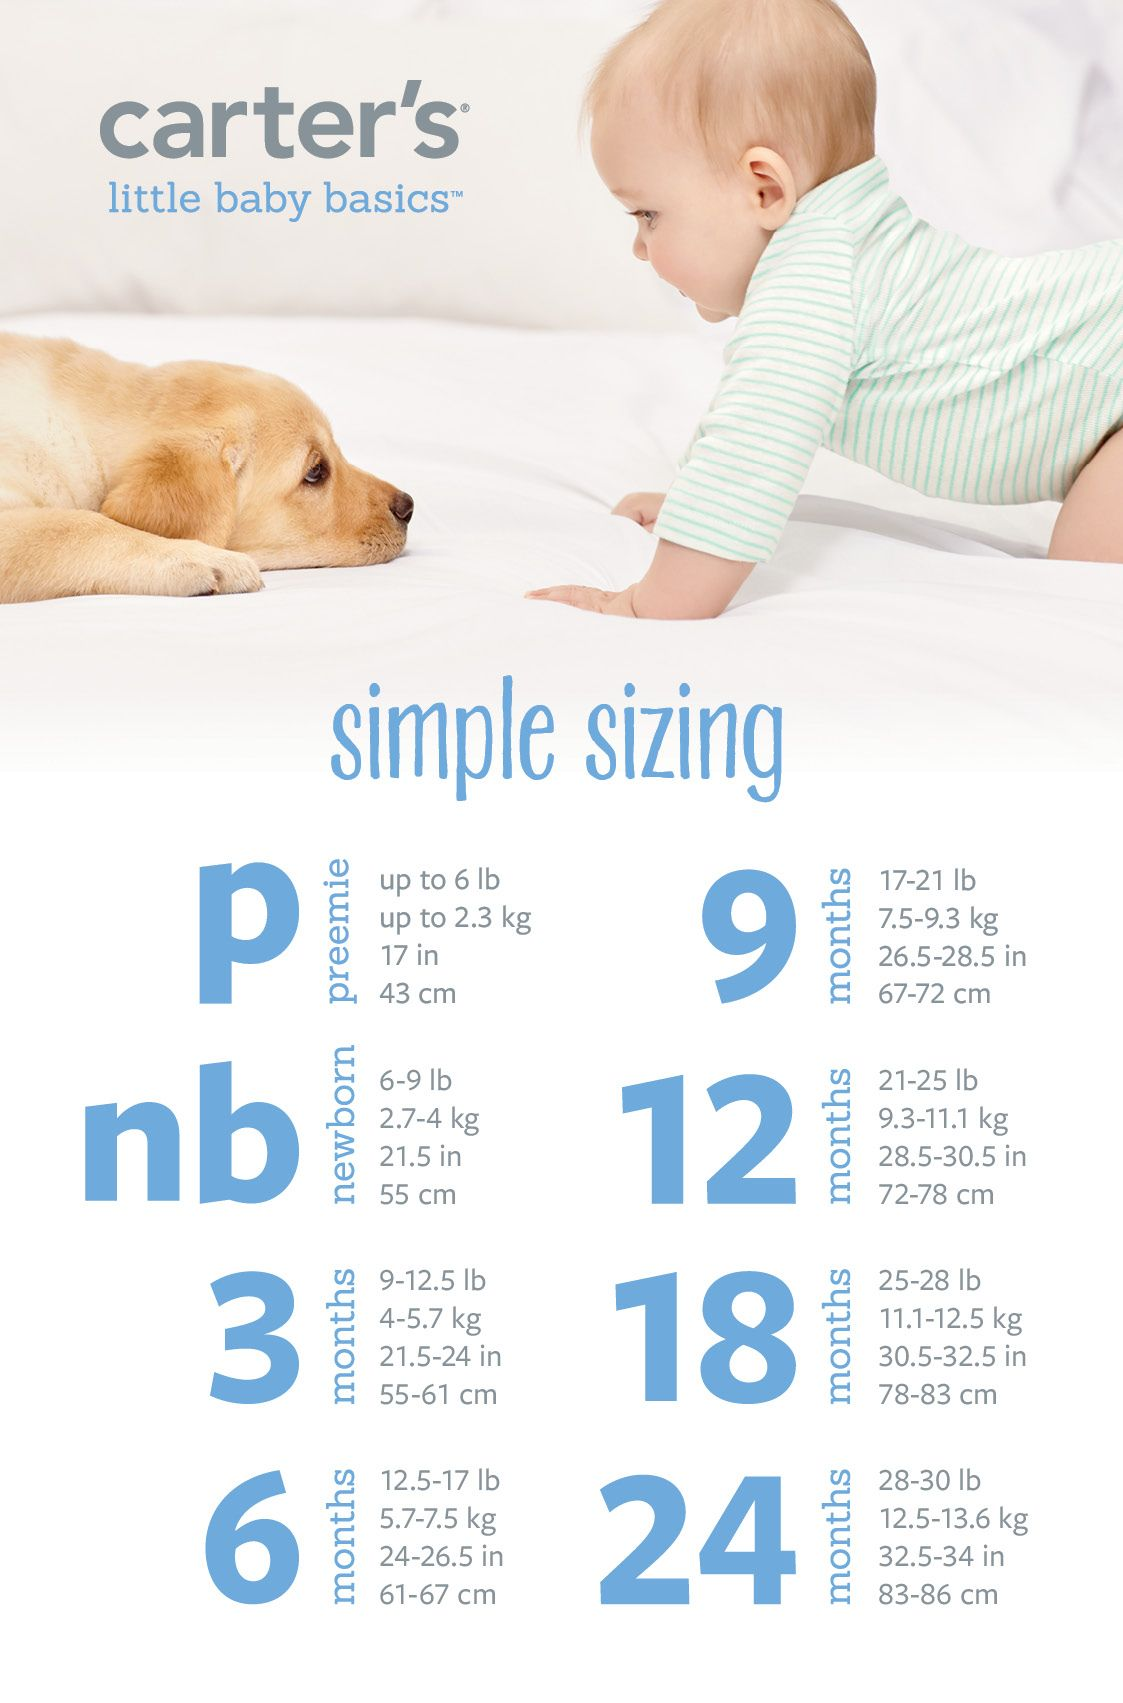 It S Hard To Know What Size To Buy Baby We Hope This Simple Guide Helps Our Preemie Size Now Fits Up T Baby Clothes Sizes Baby Basics Baby Clothes Size Chart